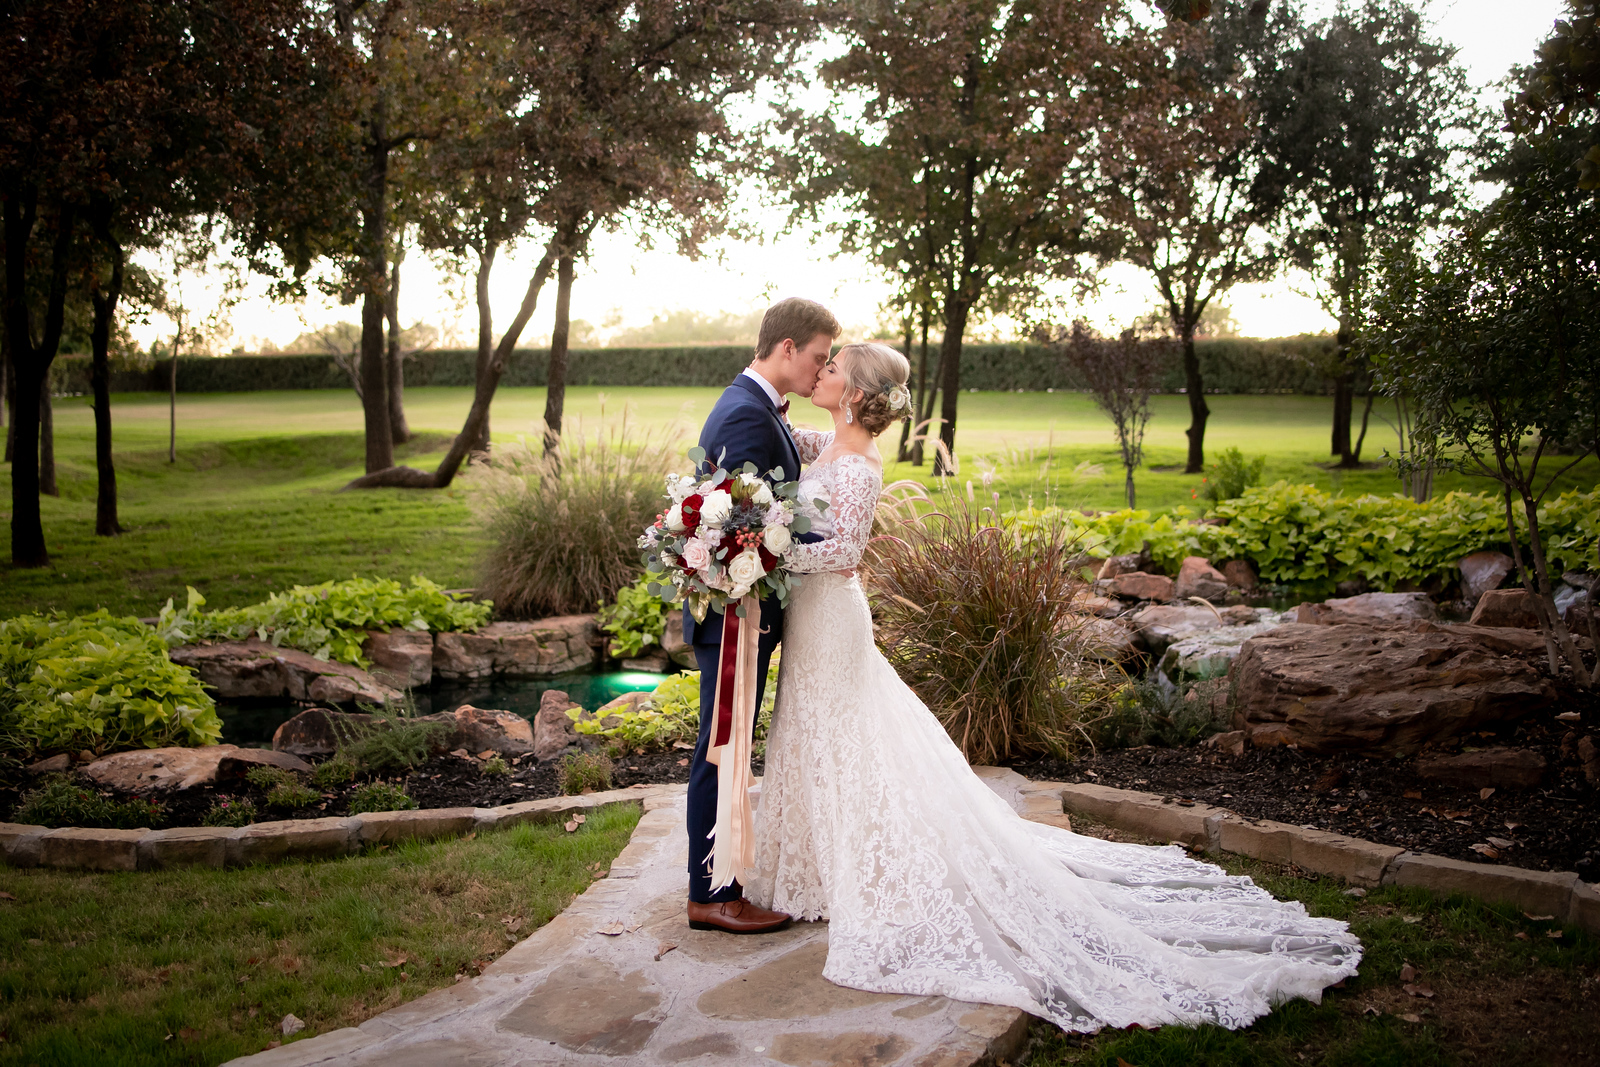 bride and groom share a kiss in a garden at sunset after their wedding ceremony